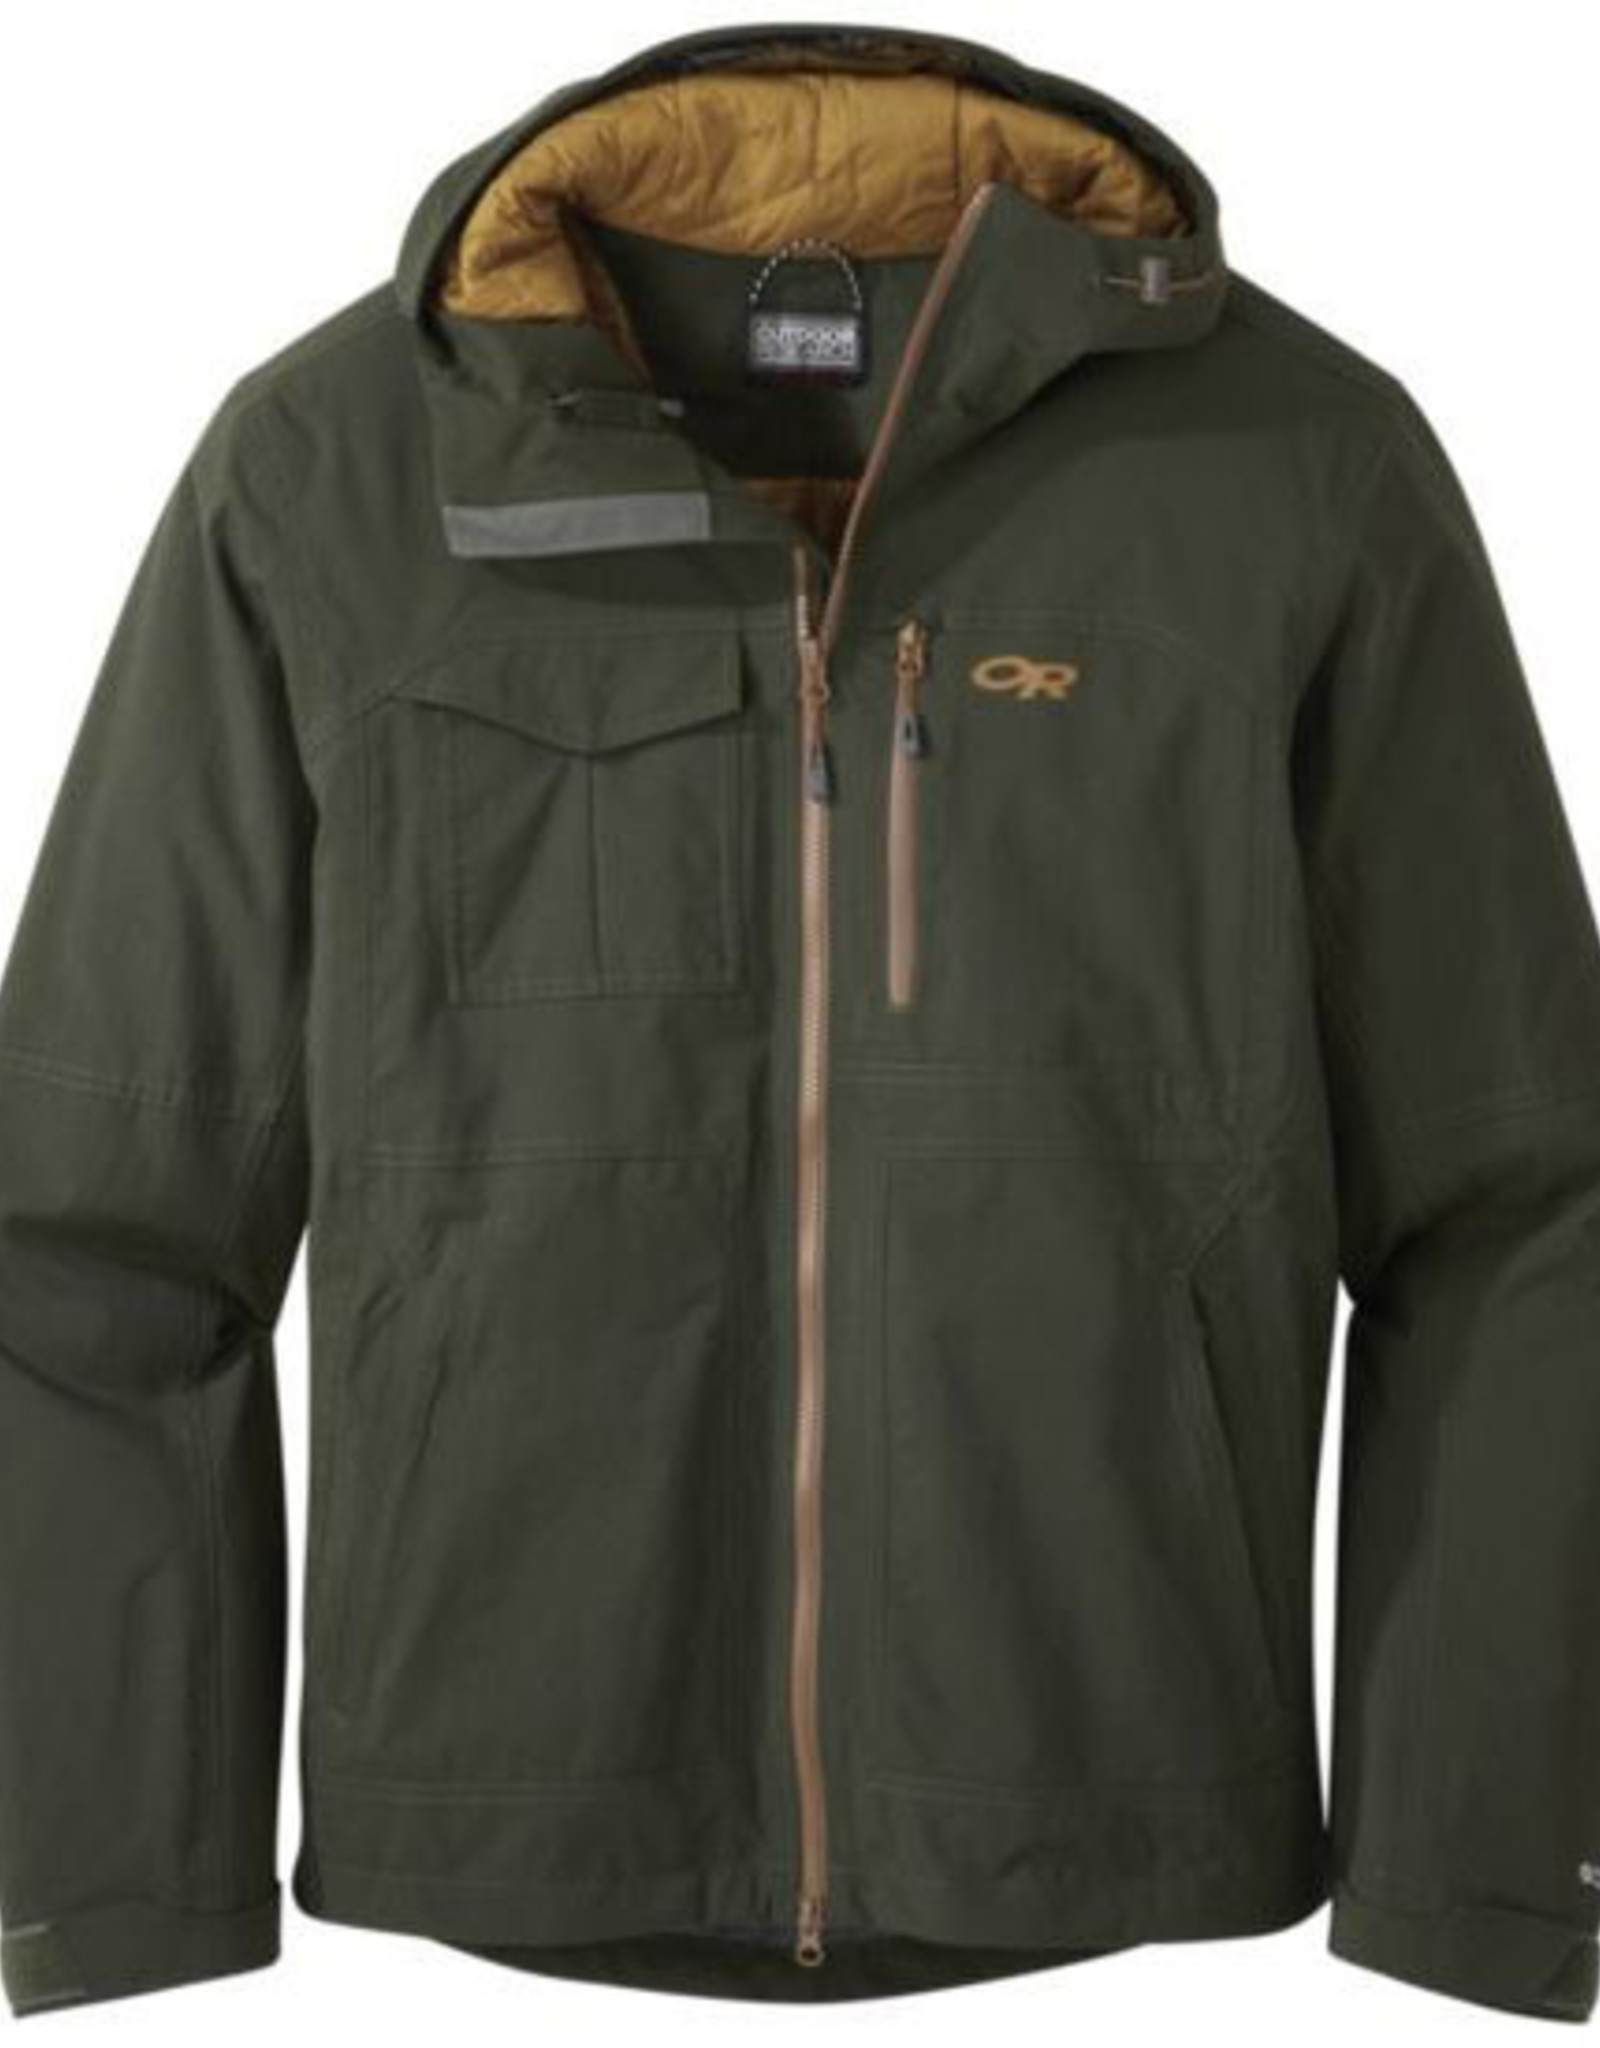 Outdoor Research Outdoor Research M's Blackpowder II Jacket